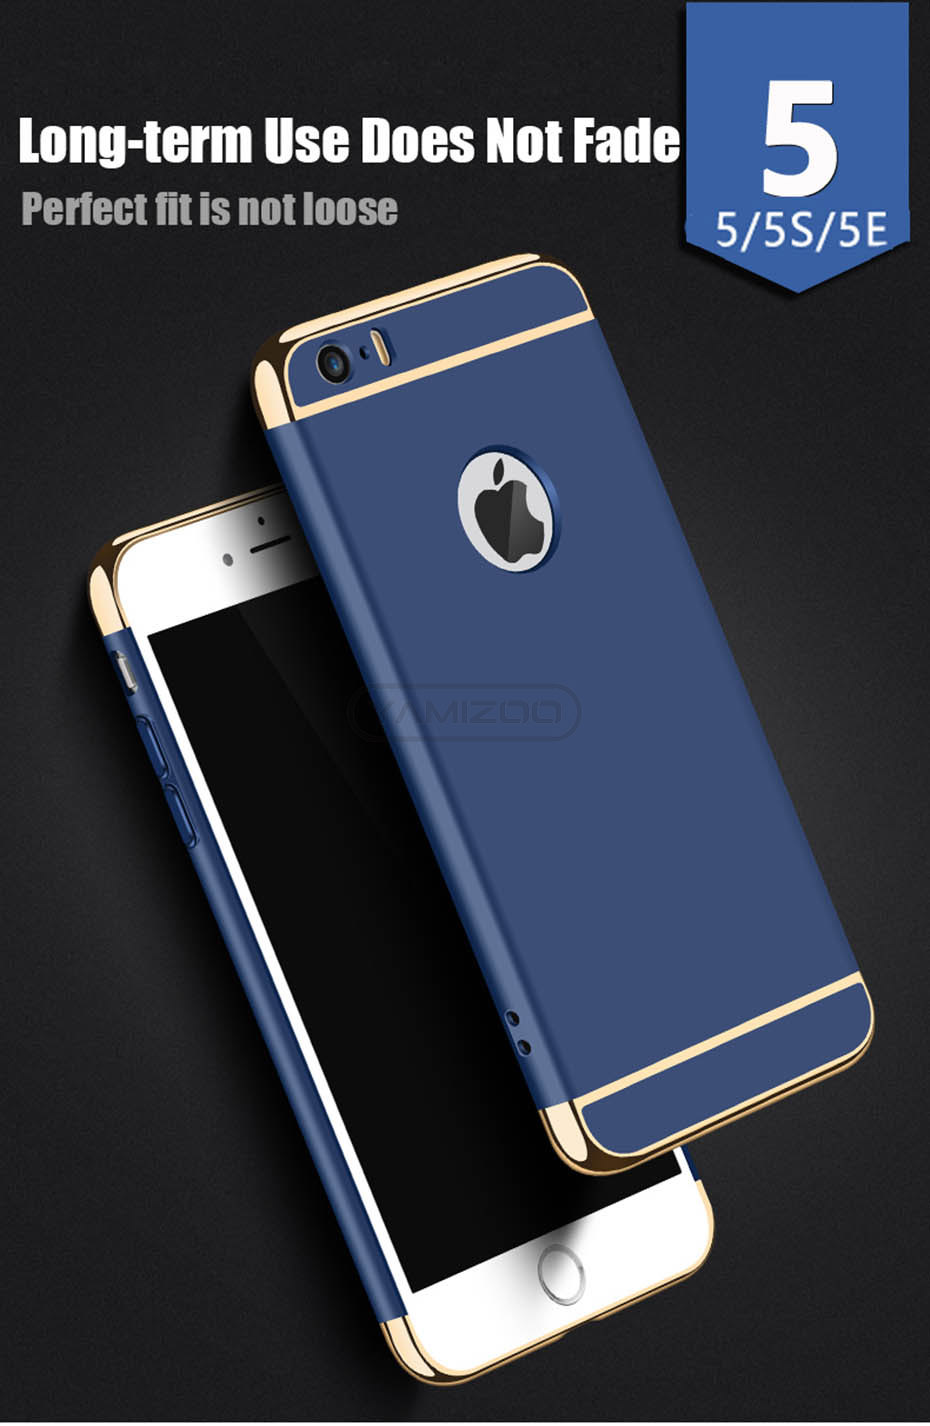 YAMIZOO 5s For iPhone se 5 Case 360 protection Phone Cases On Luxury Full Hard Plastic Coque Back Cover For iPhone 5s se 5 Case (3)